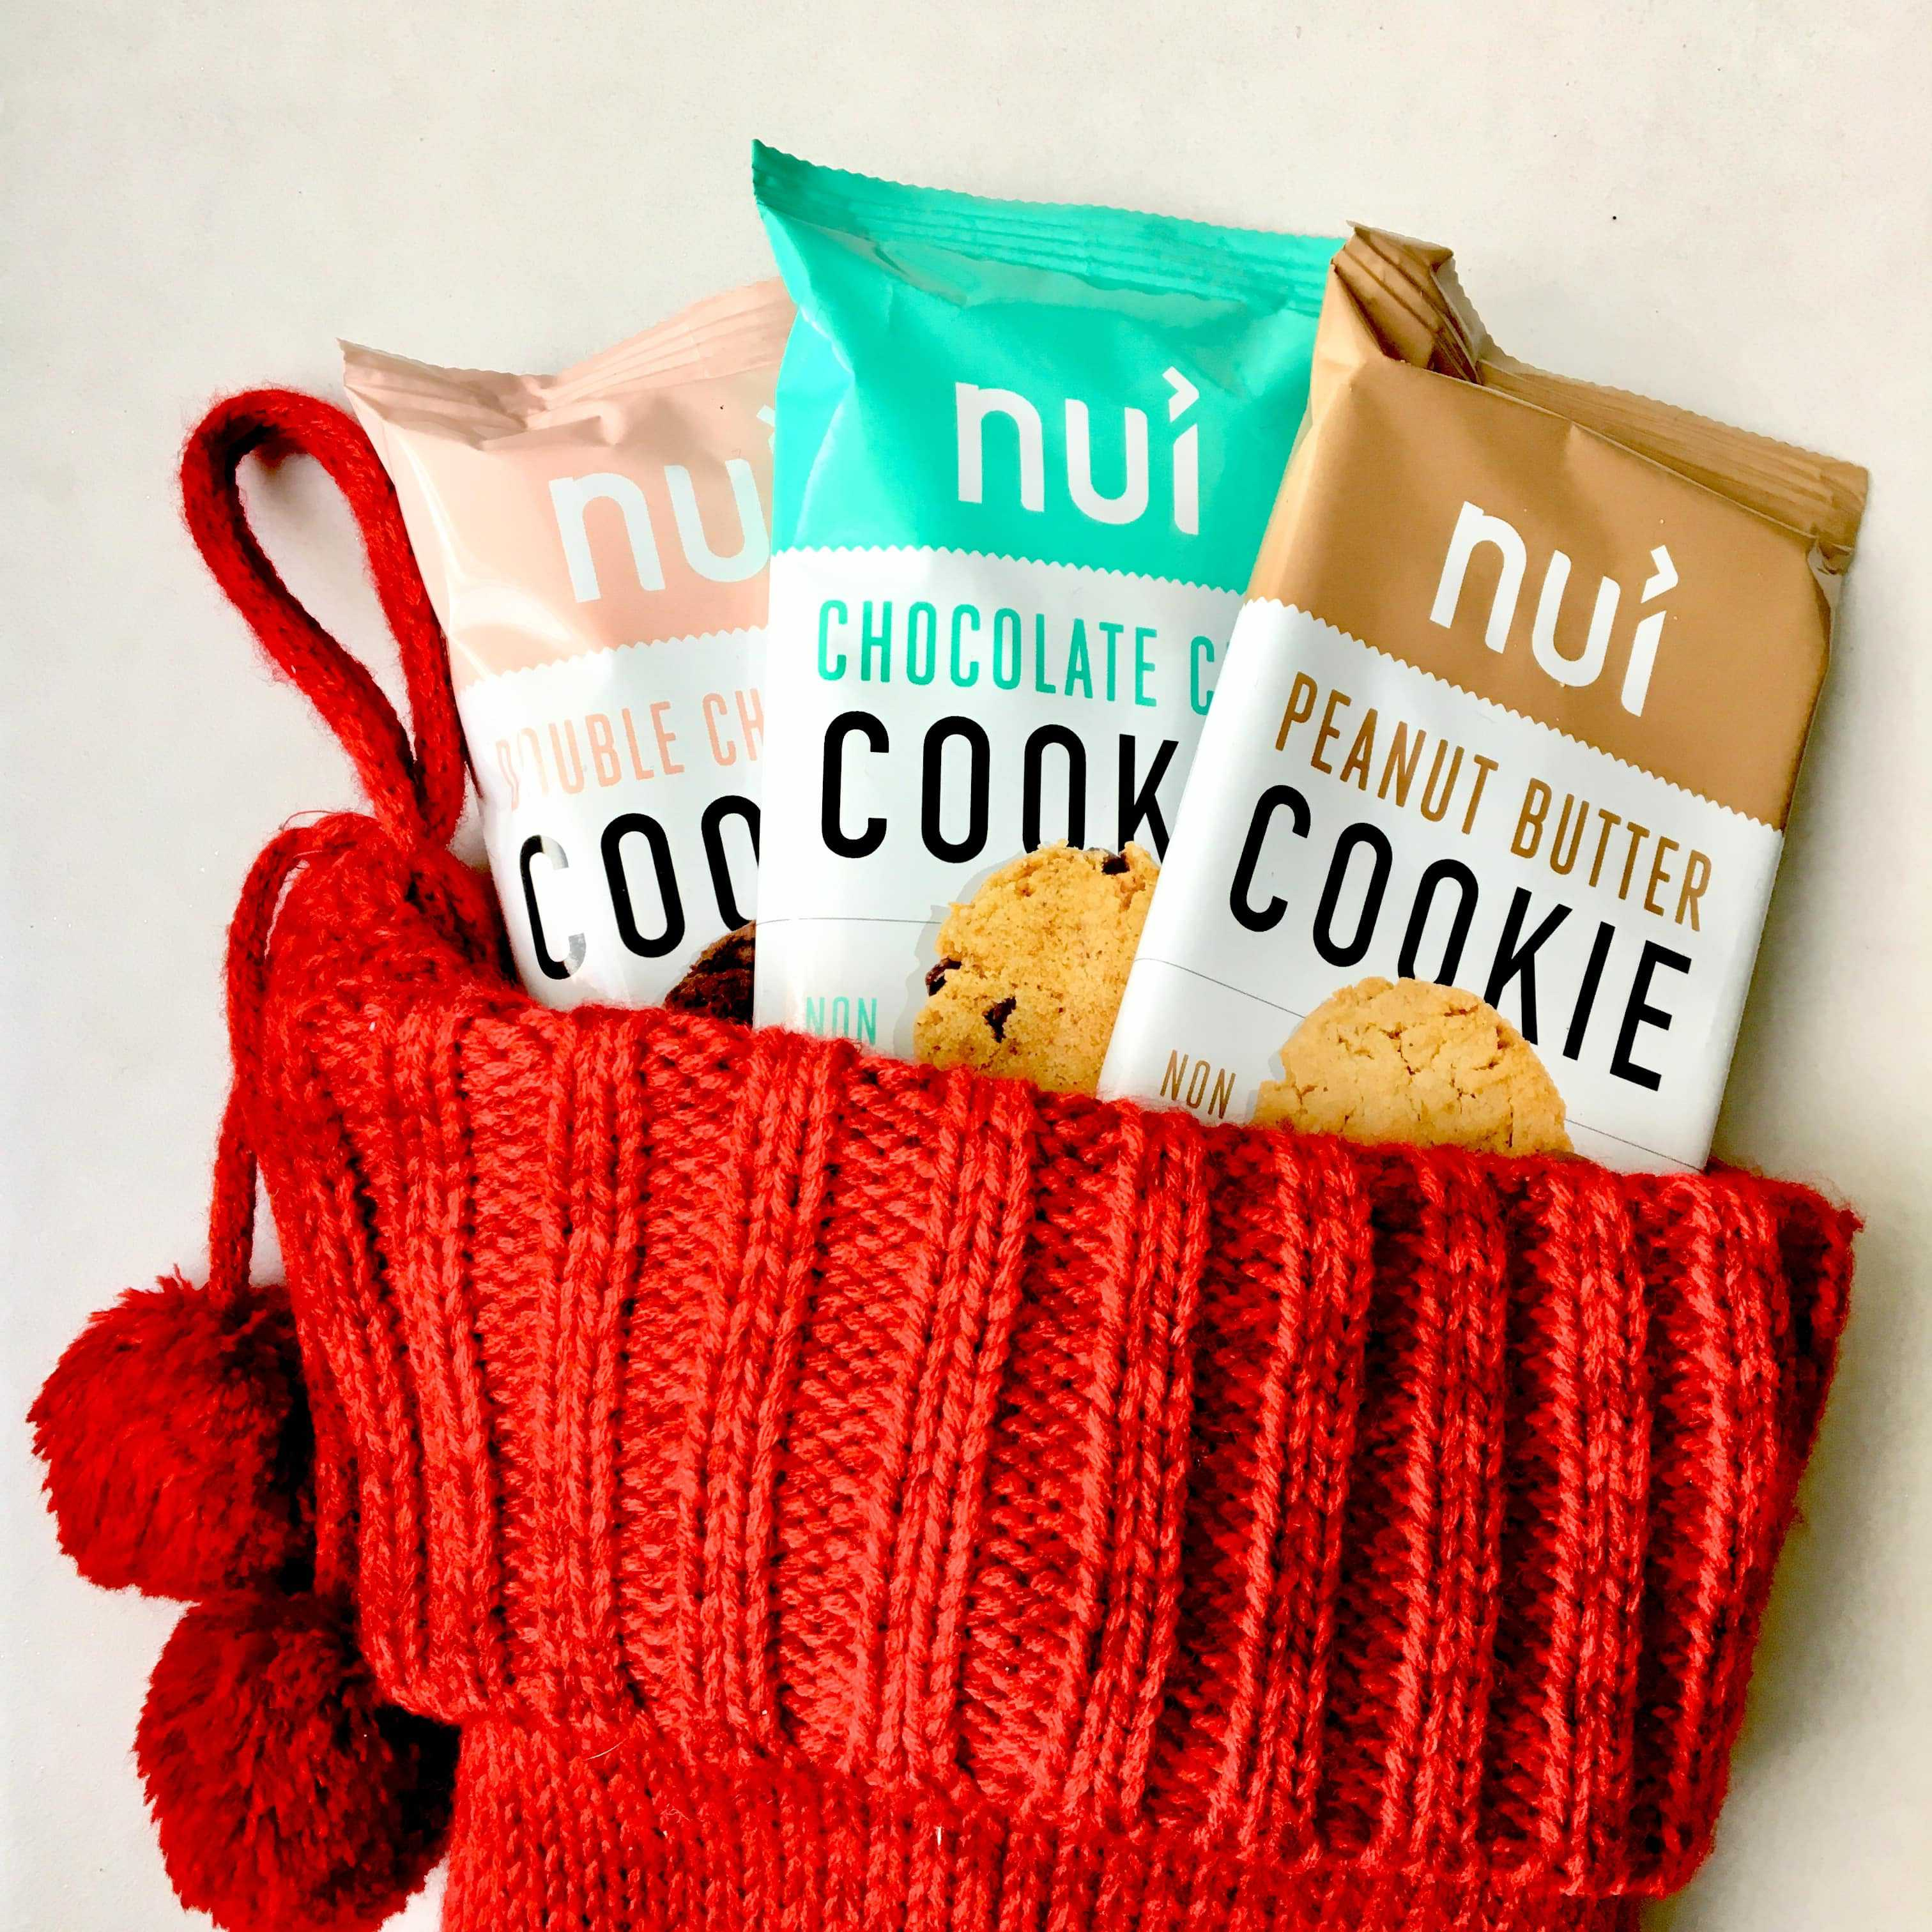 Nui Cookies in a holiday stocking